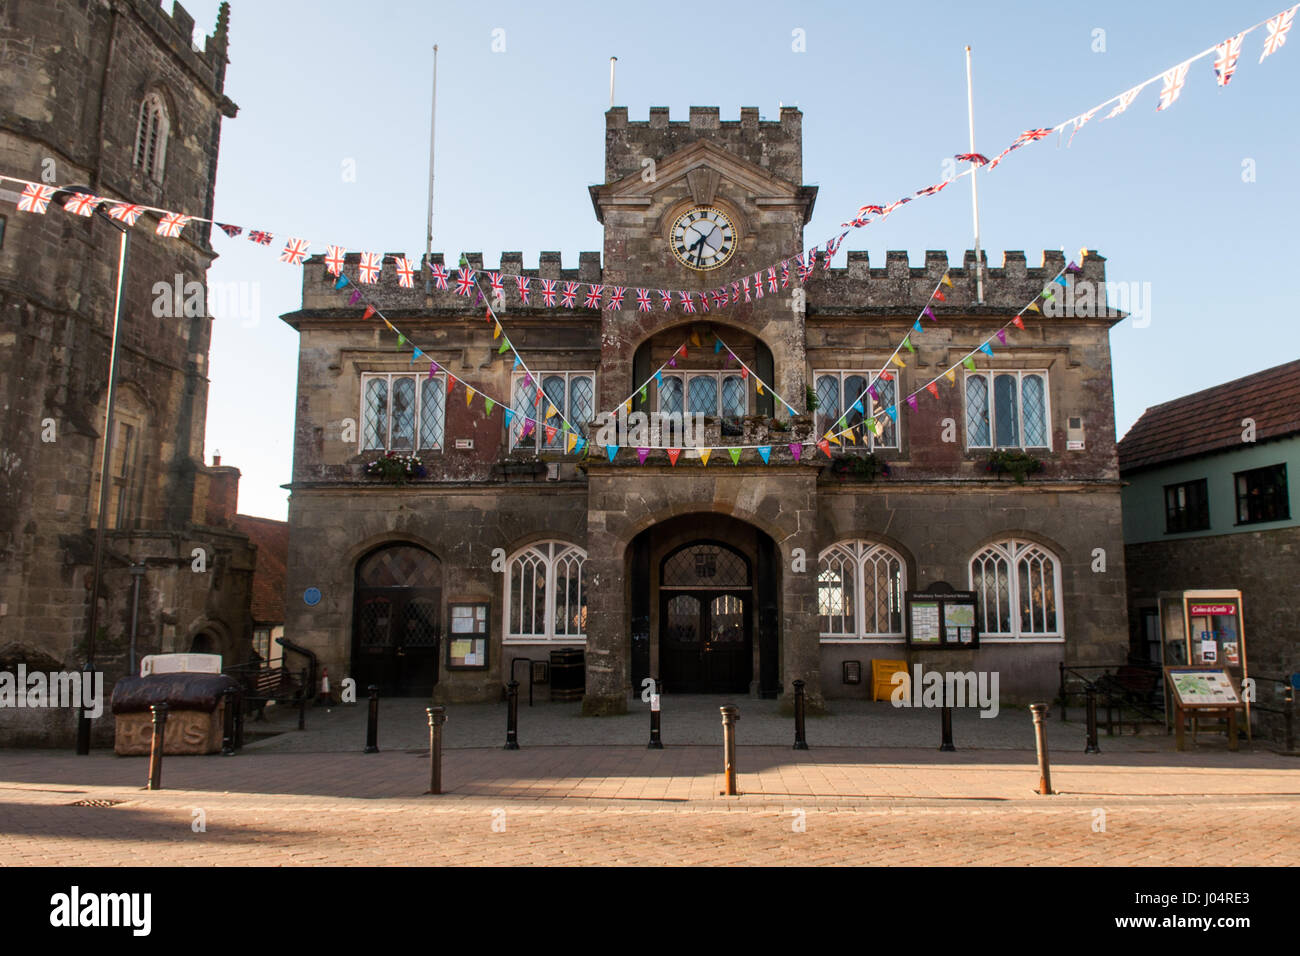 Shaftesbury, England, UK - June 28, 2012: Bunting decorates the castellated stone town hall of Shaftesbury in Dorset - Stock Image